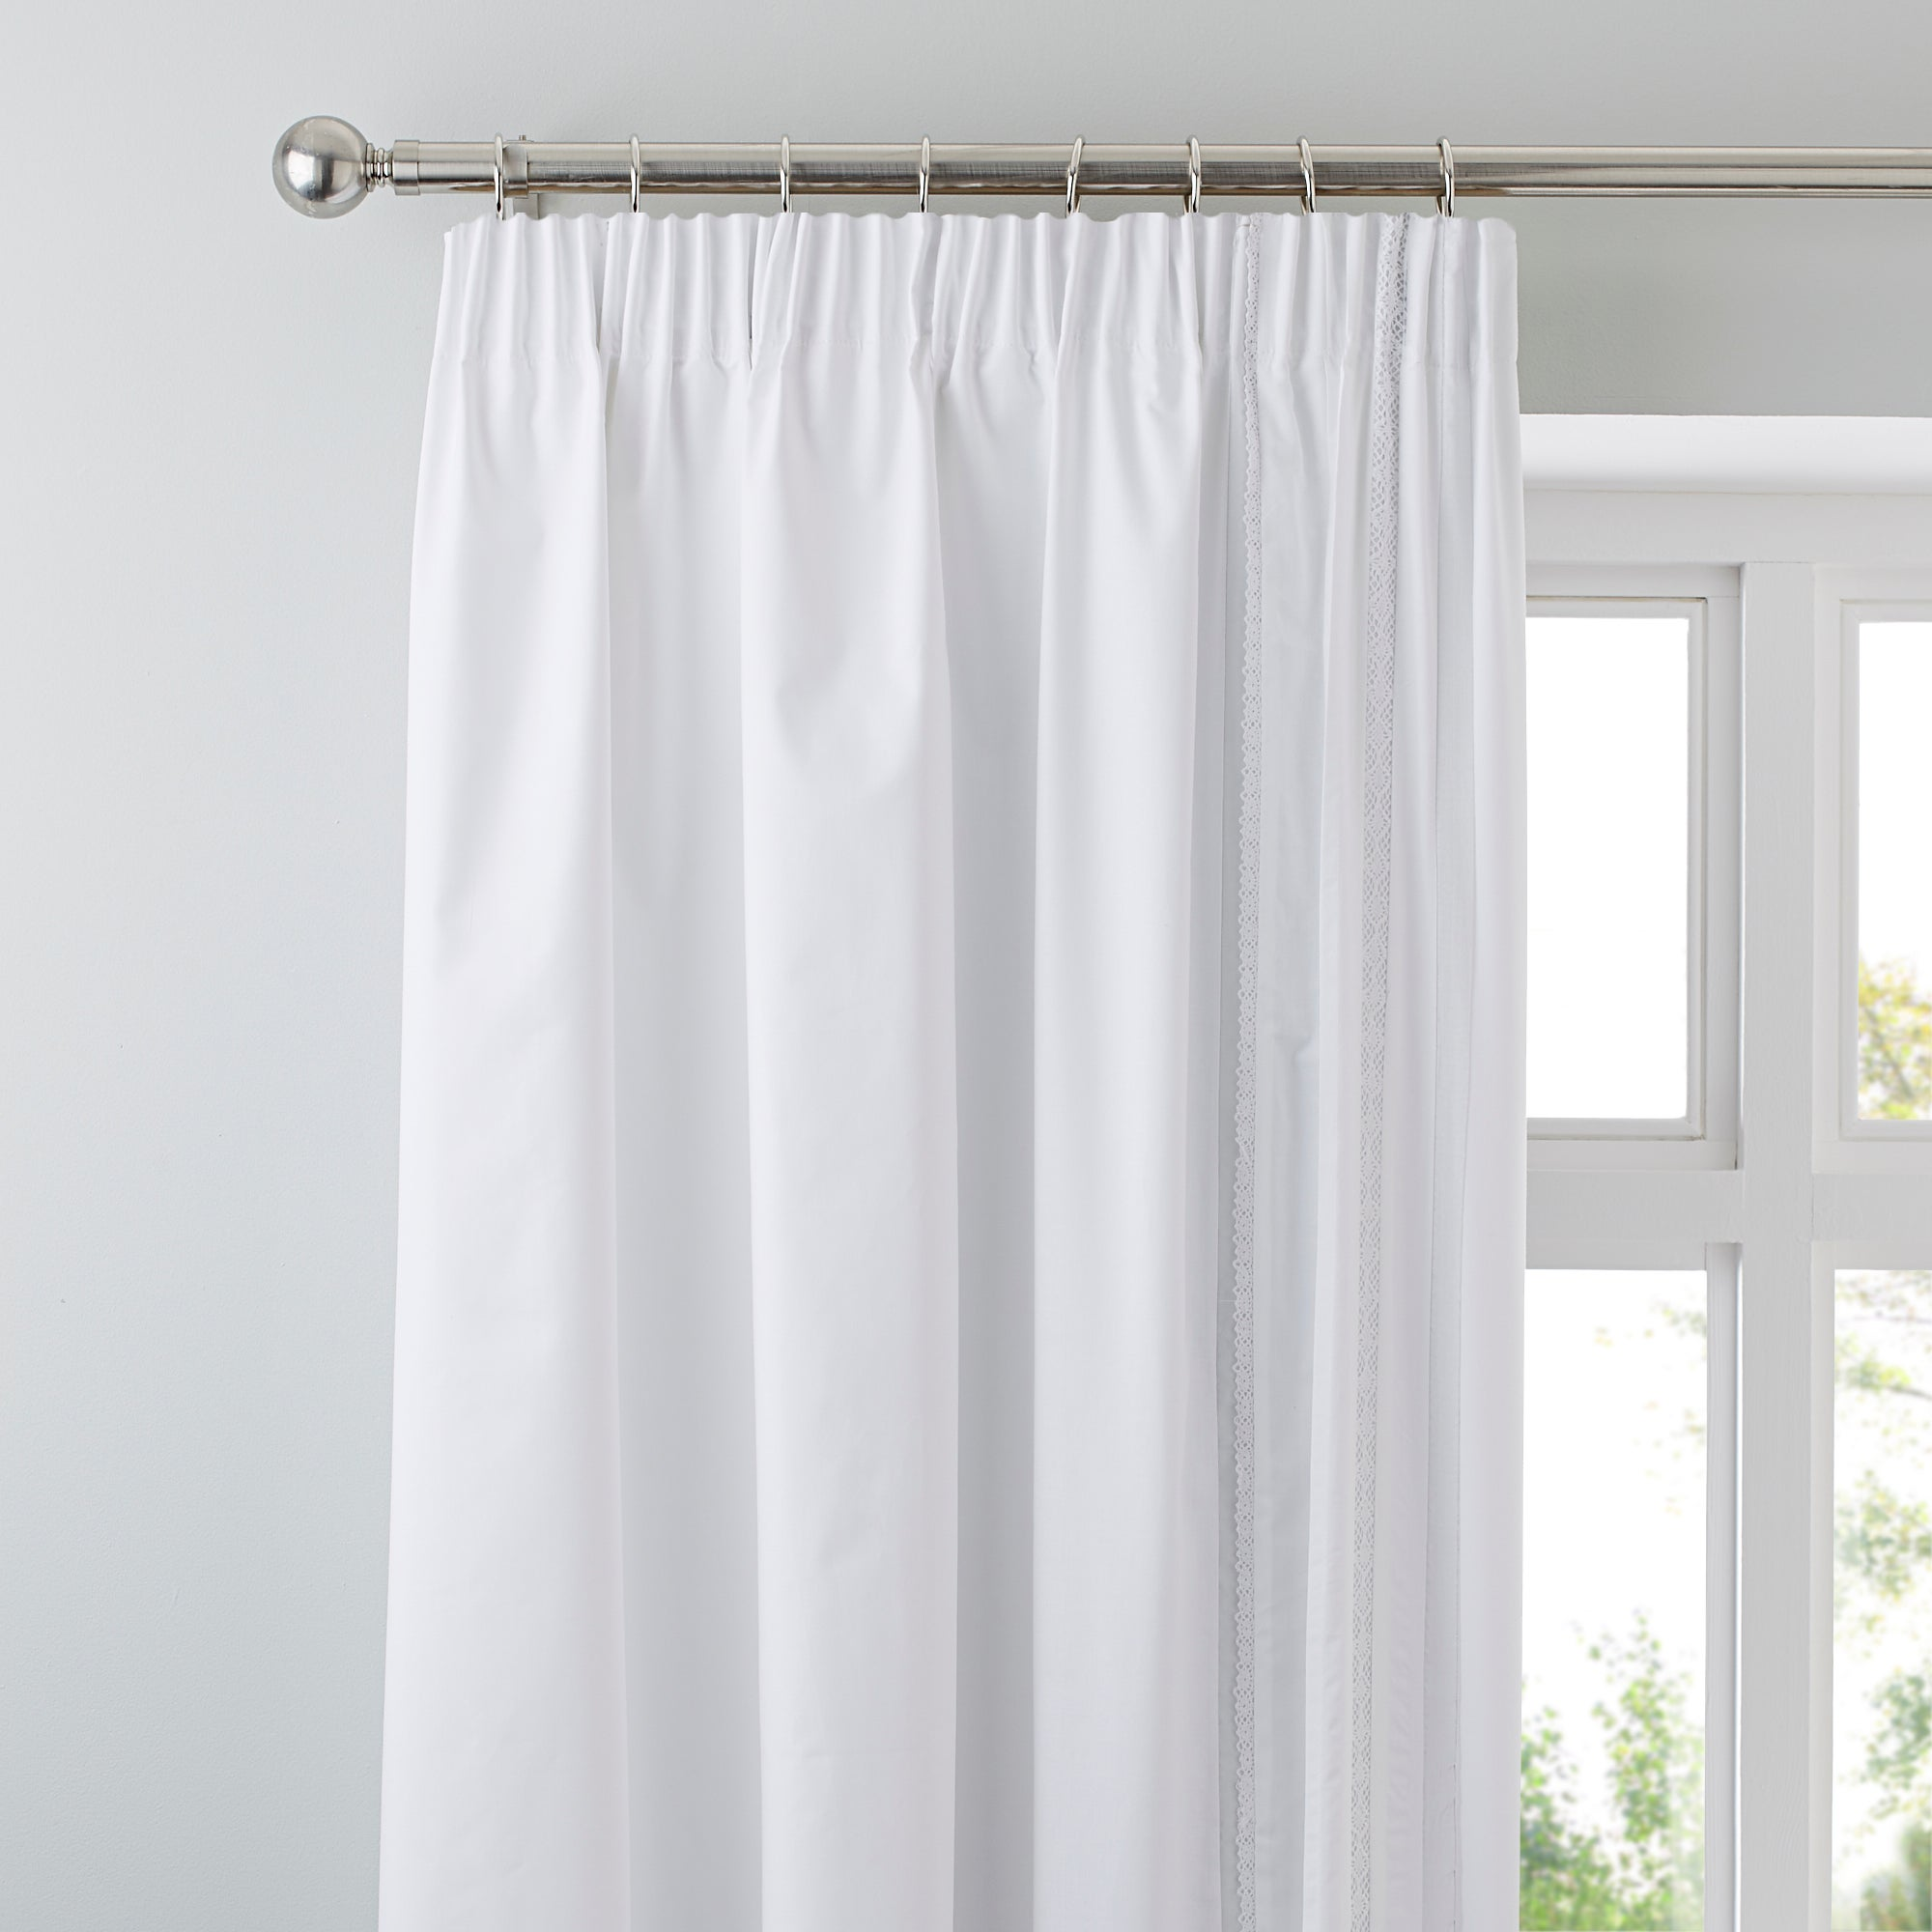 White Evangeline Thermal Pencil Pleat Curtains